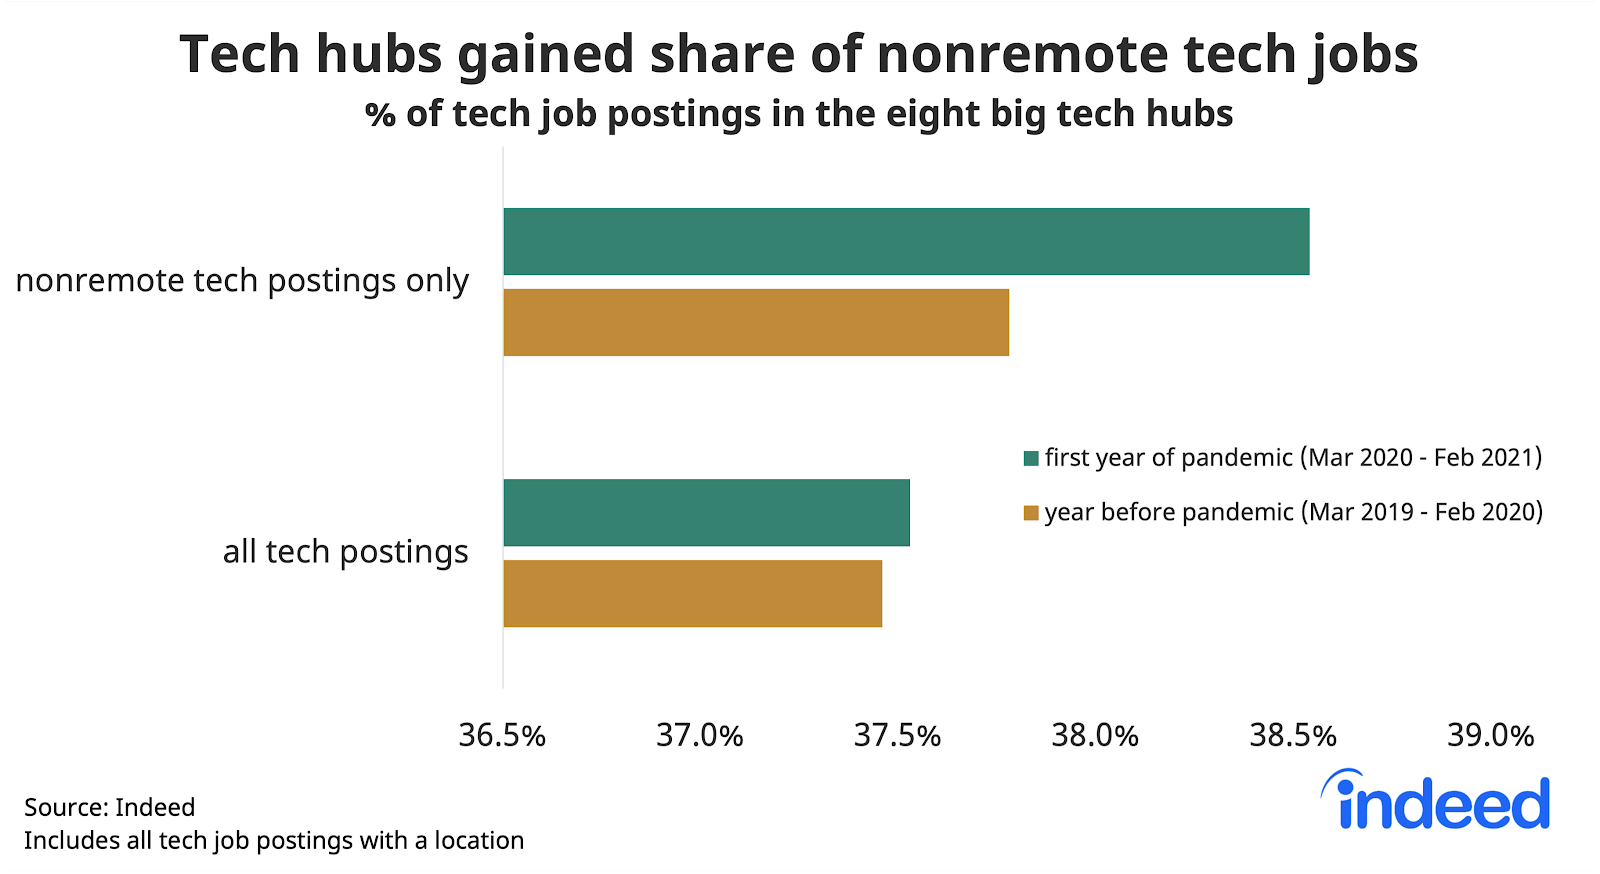 Bar graph showing tech hubs gained share of nonremote tech jobs